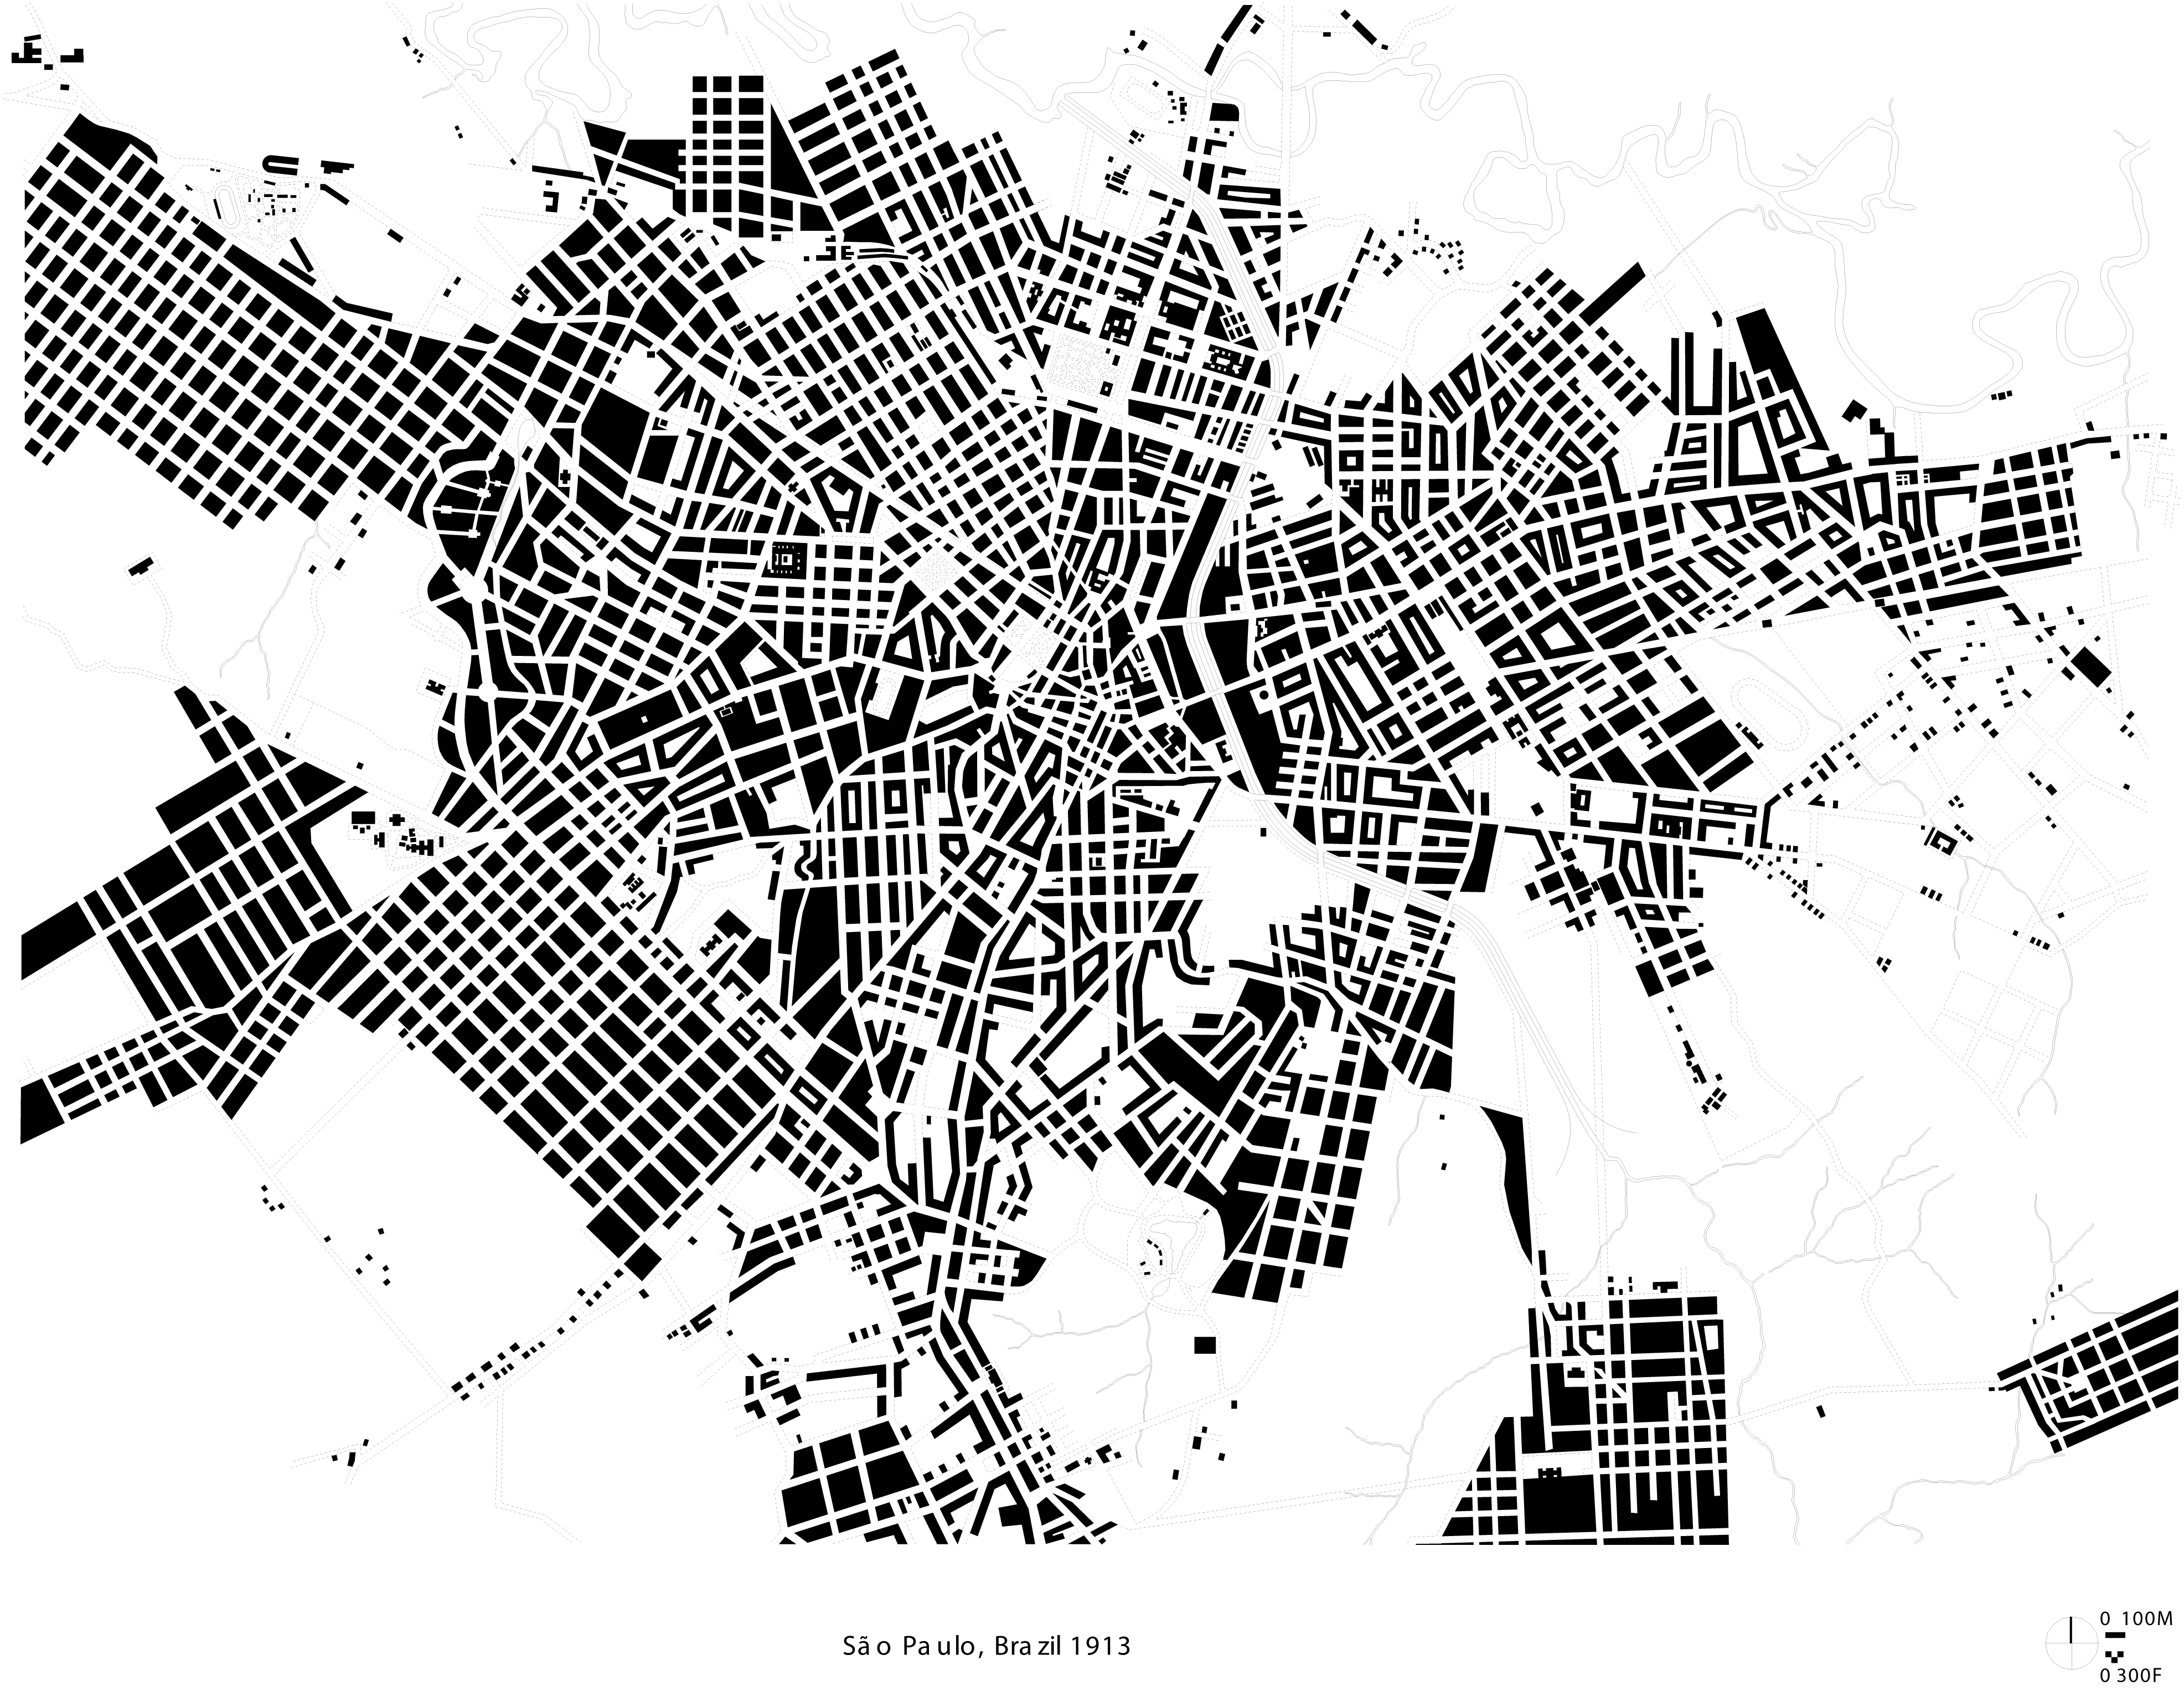 Historical Figure Ground Drawings